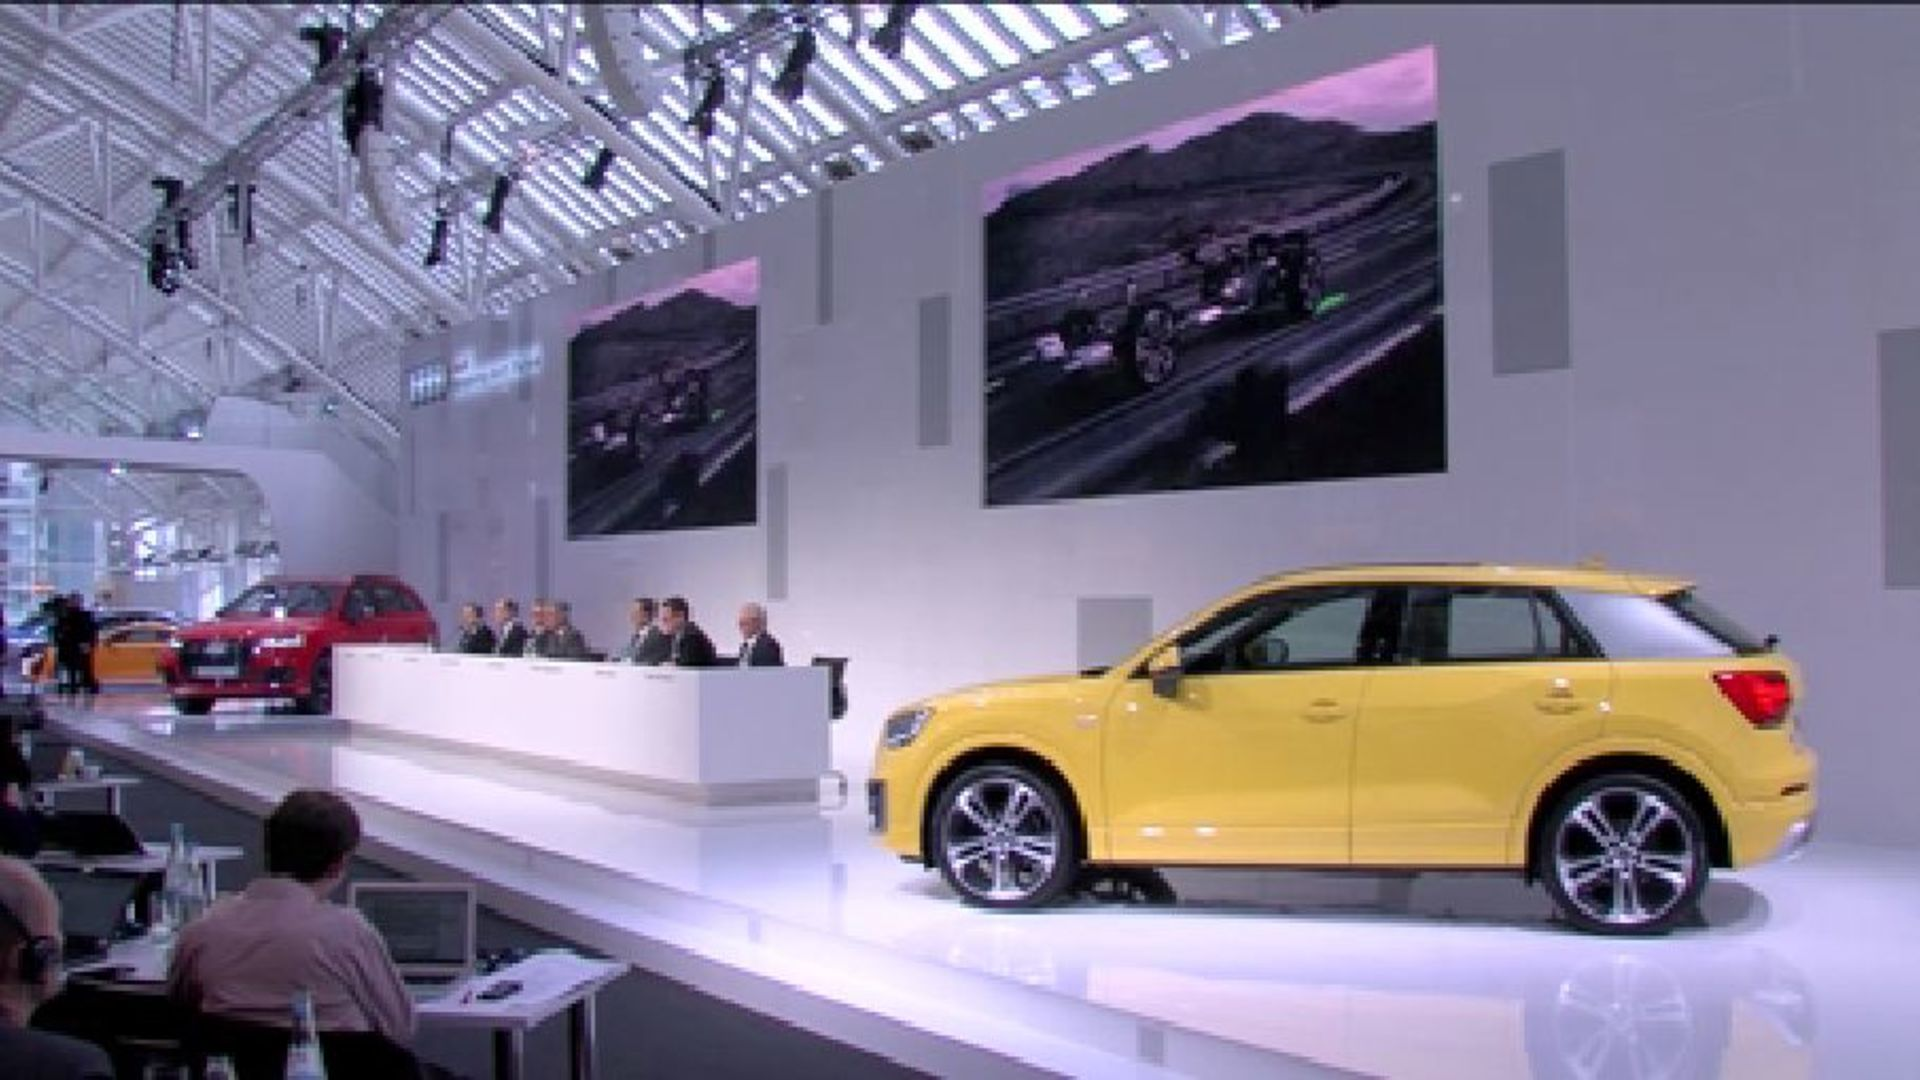 The Audi-Annual Press Conference in full